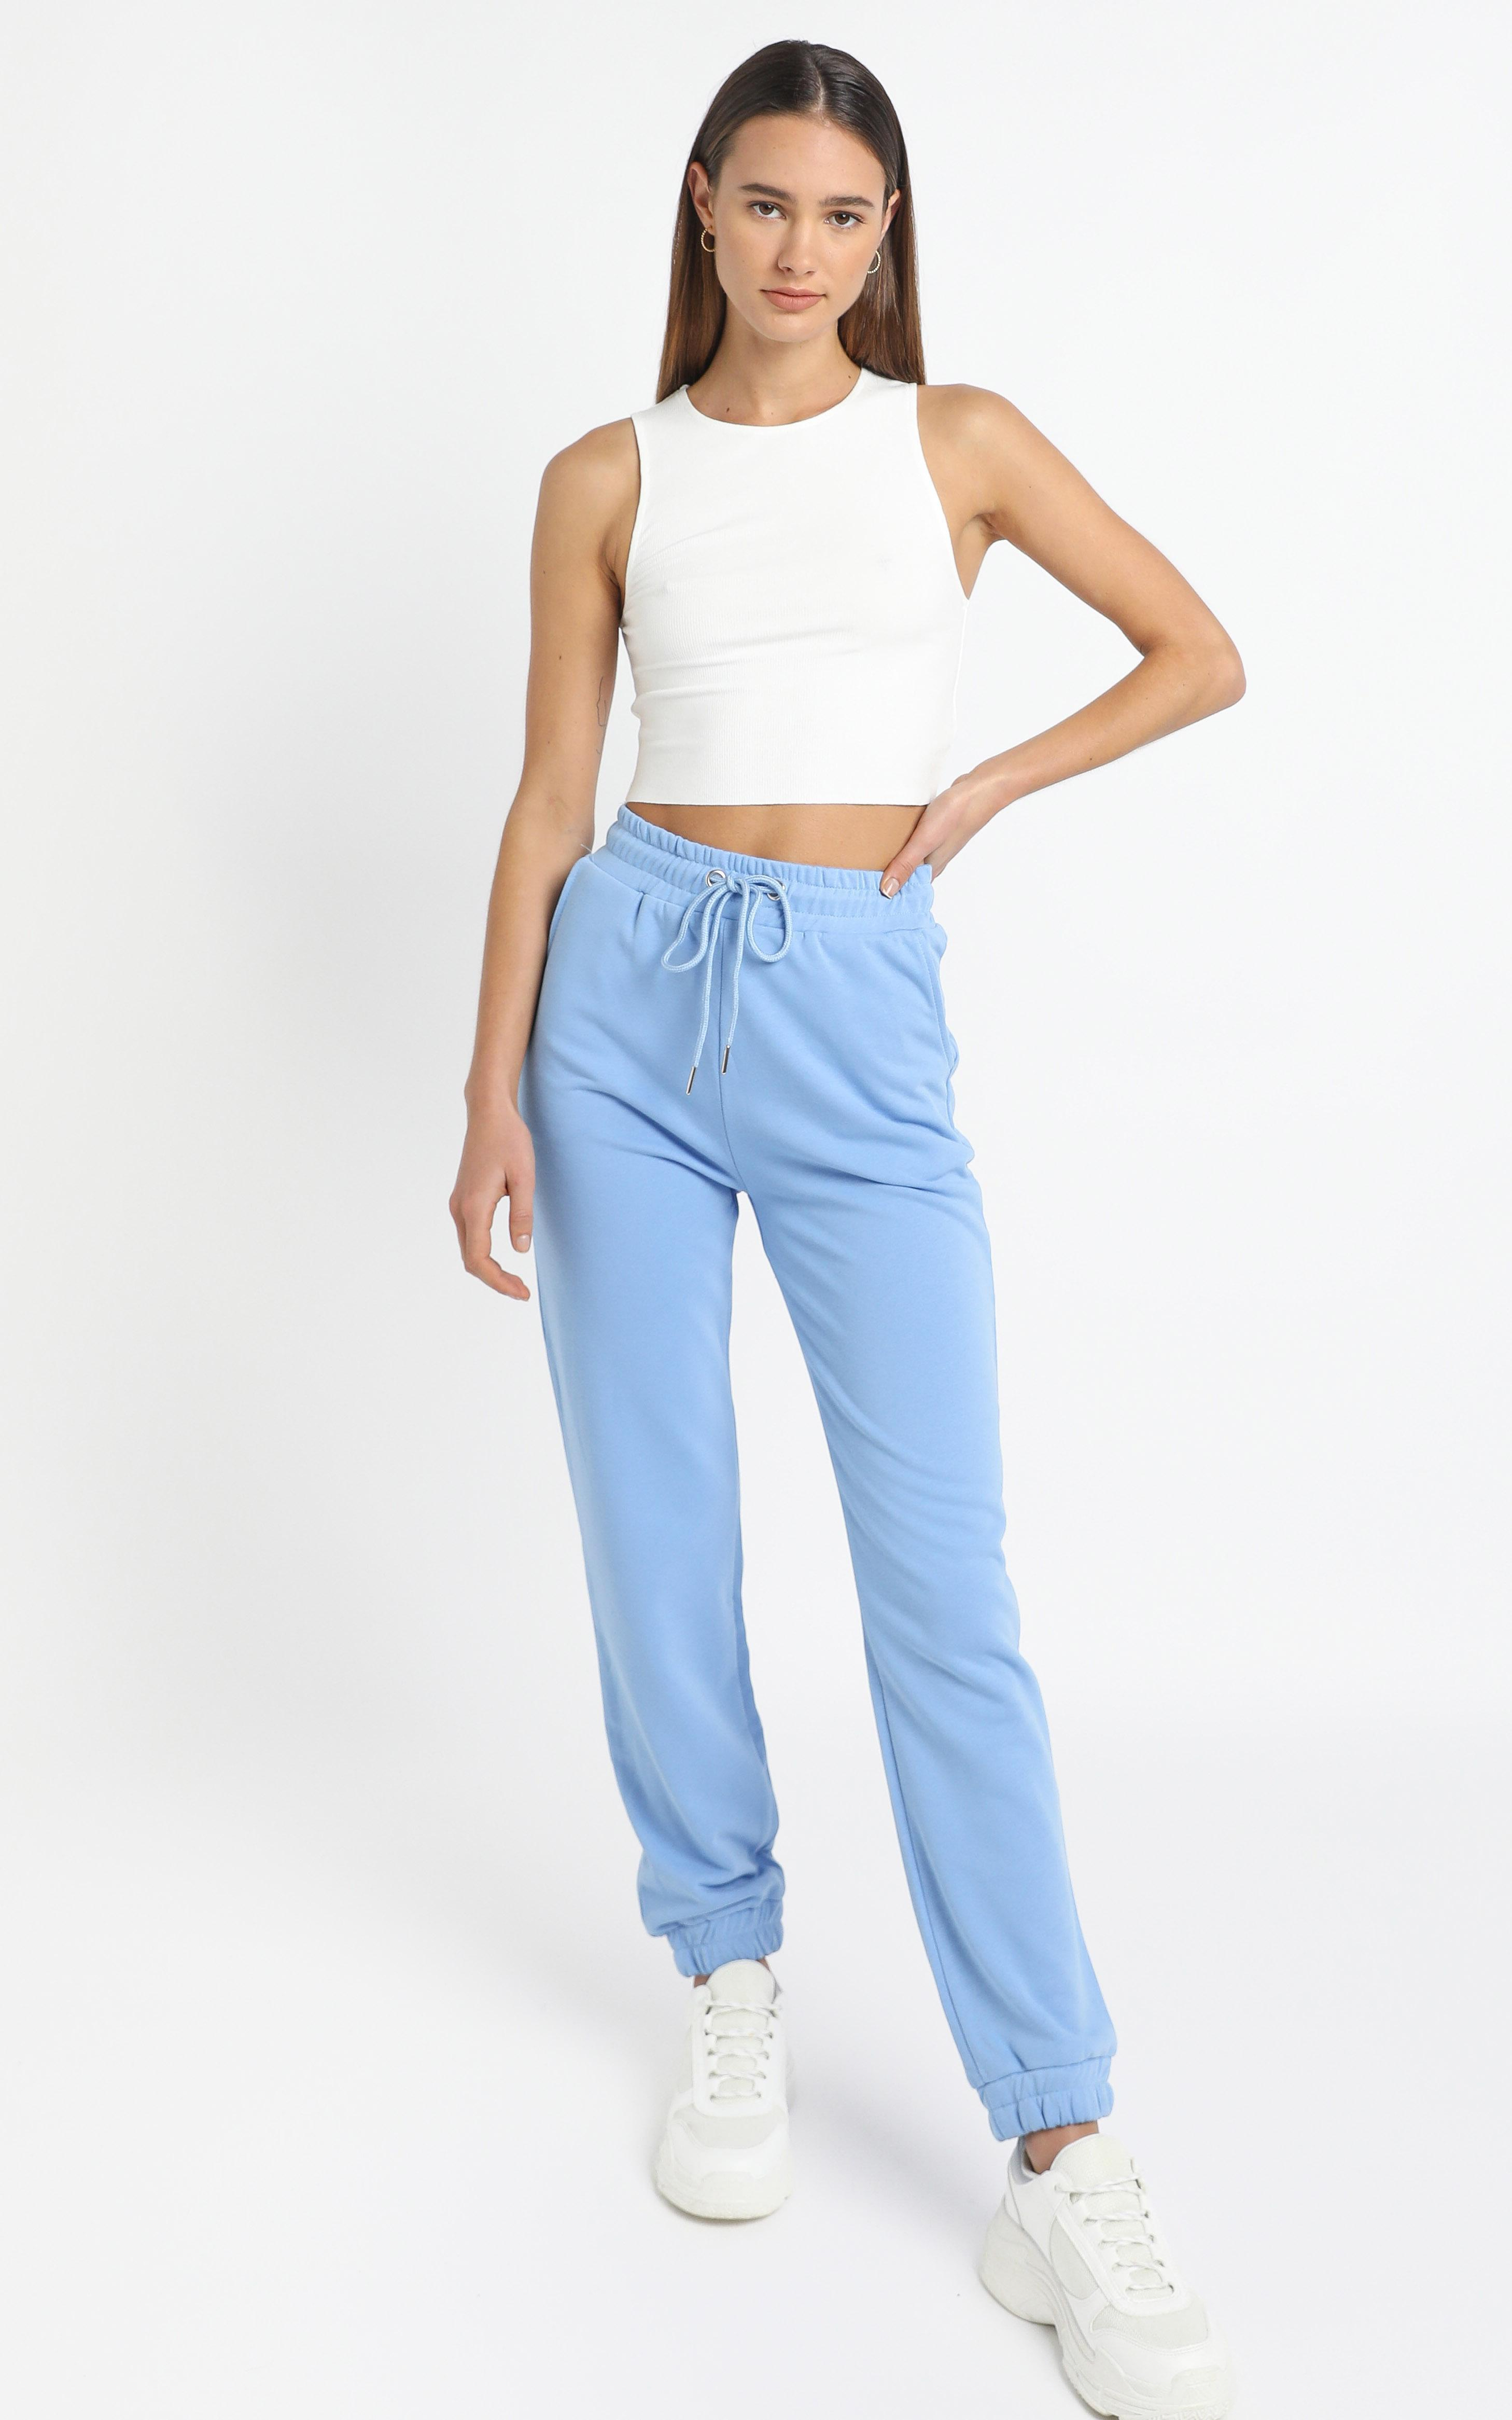 Kelsea Joggers in Baby Blue - 12 (L), Blue, hi-res image number null